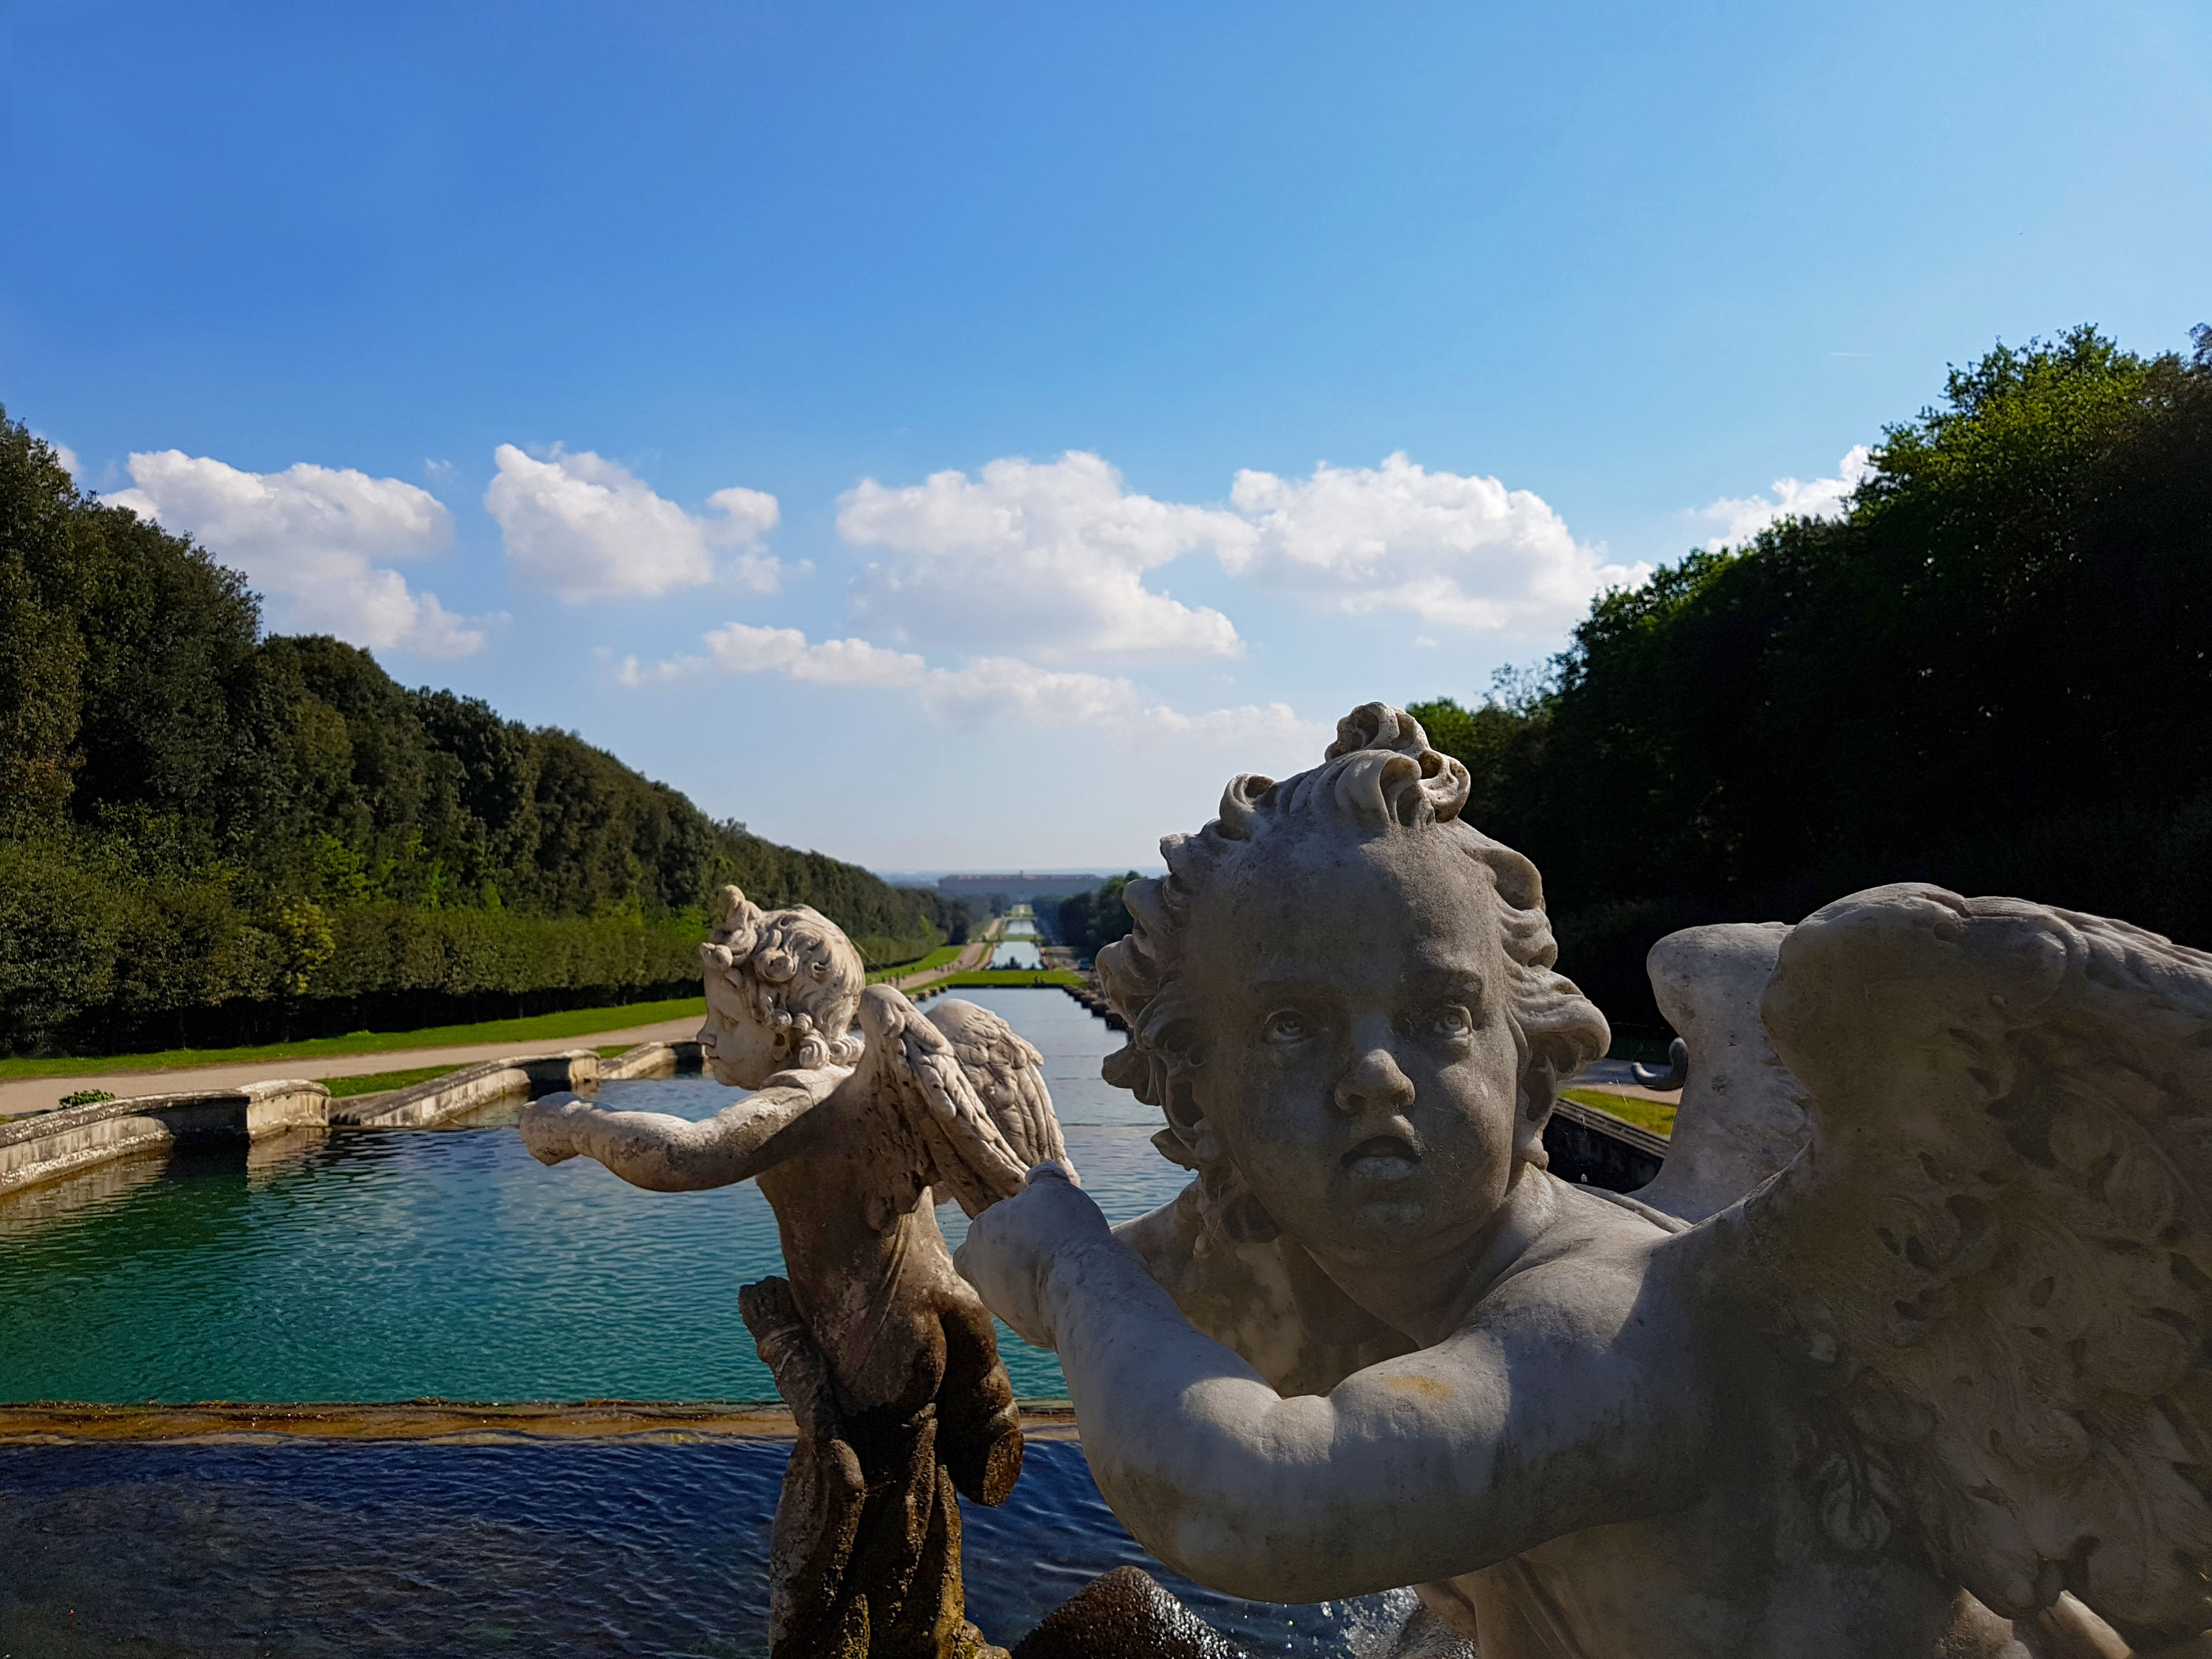 statue, sky, water, elephant, only men, day, sculpture, outdoors, people, adult, one man only